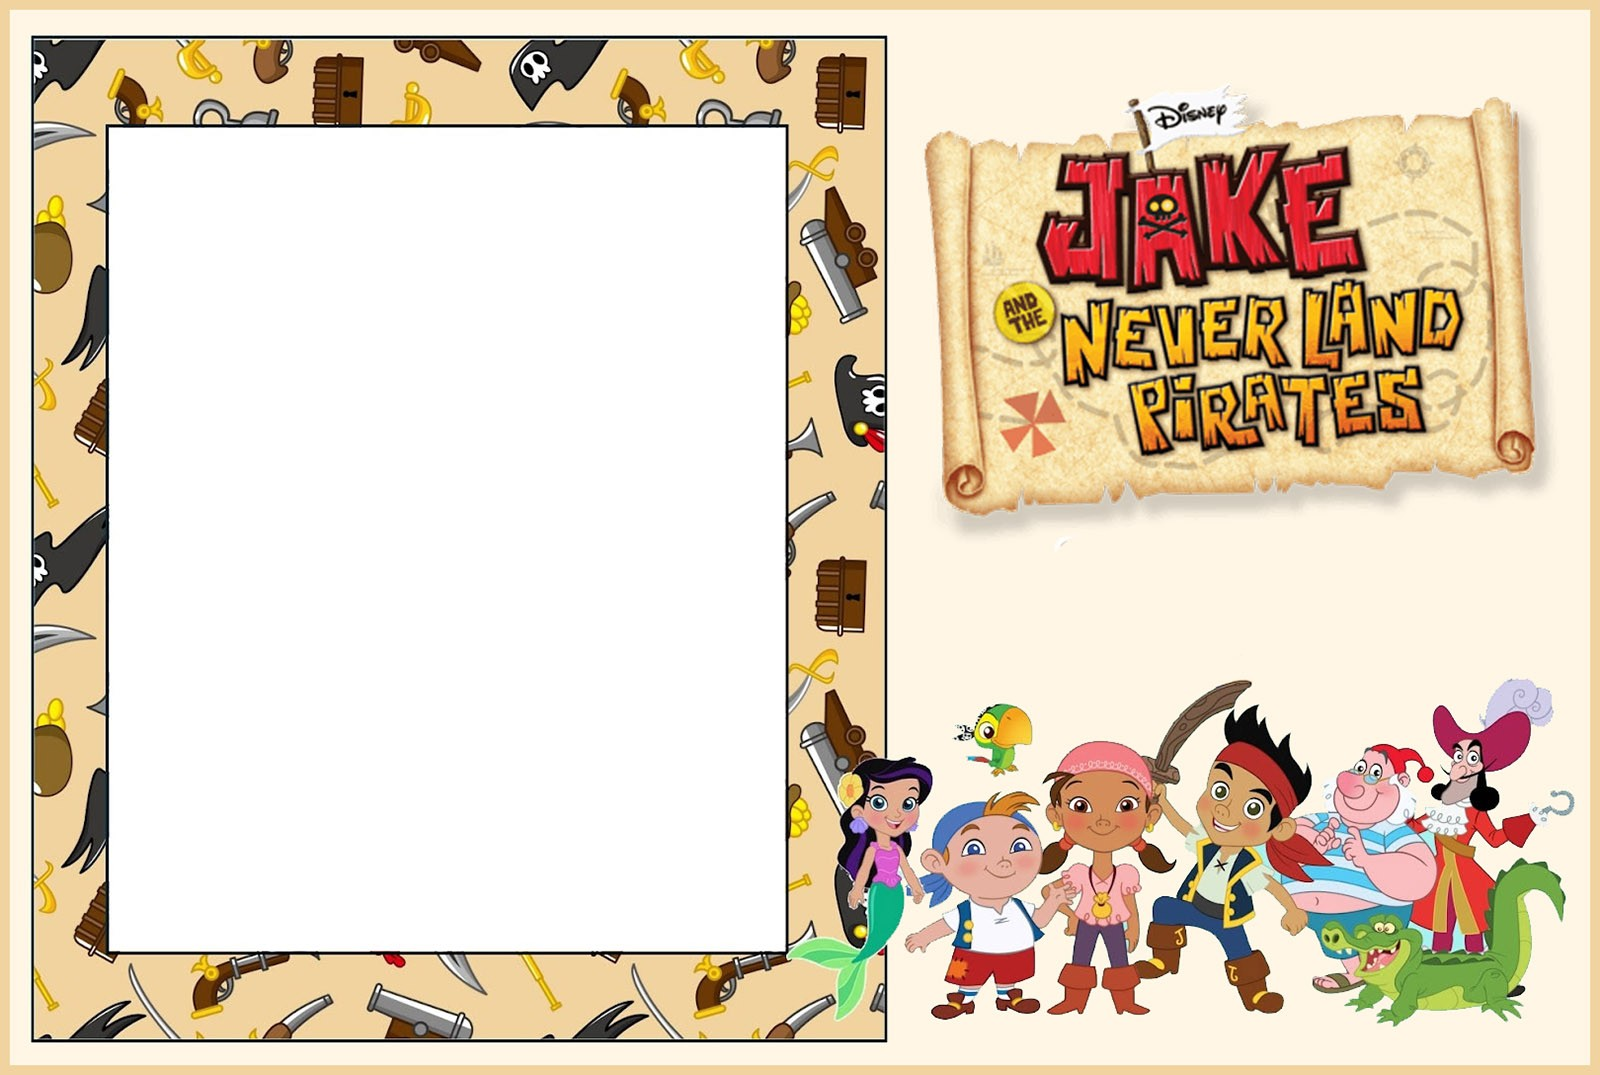 Jake and Neverland Pirates Invitation Template | Invitations Online